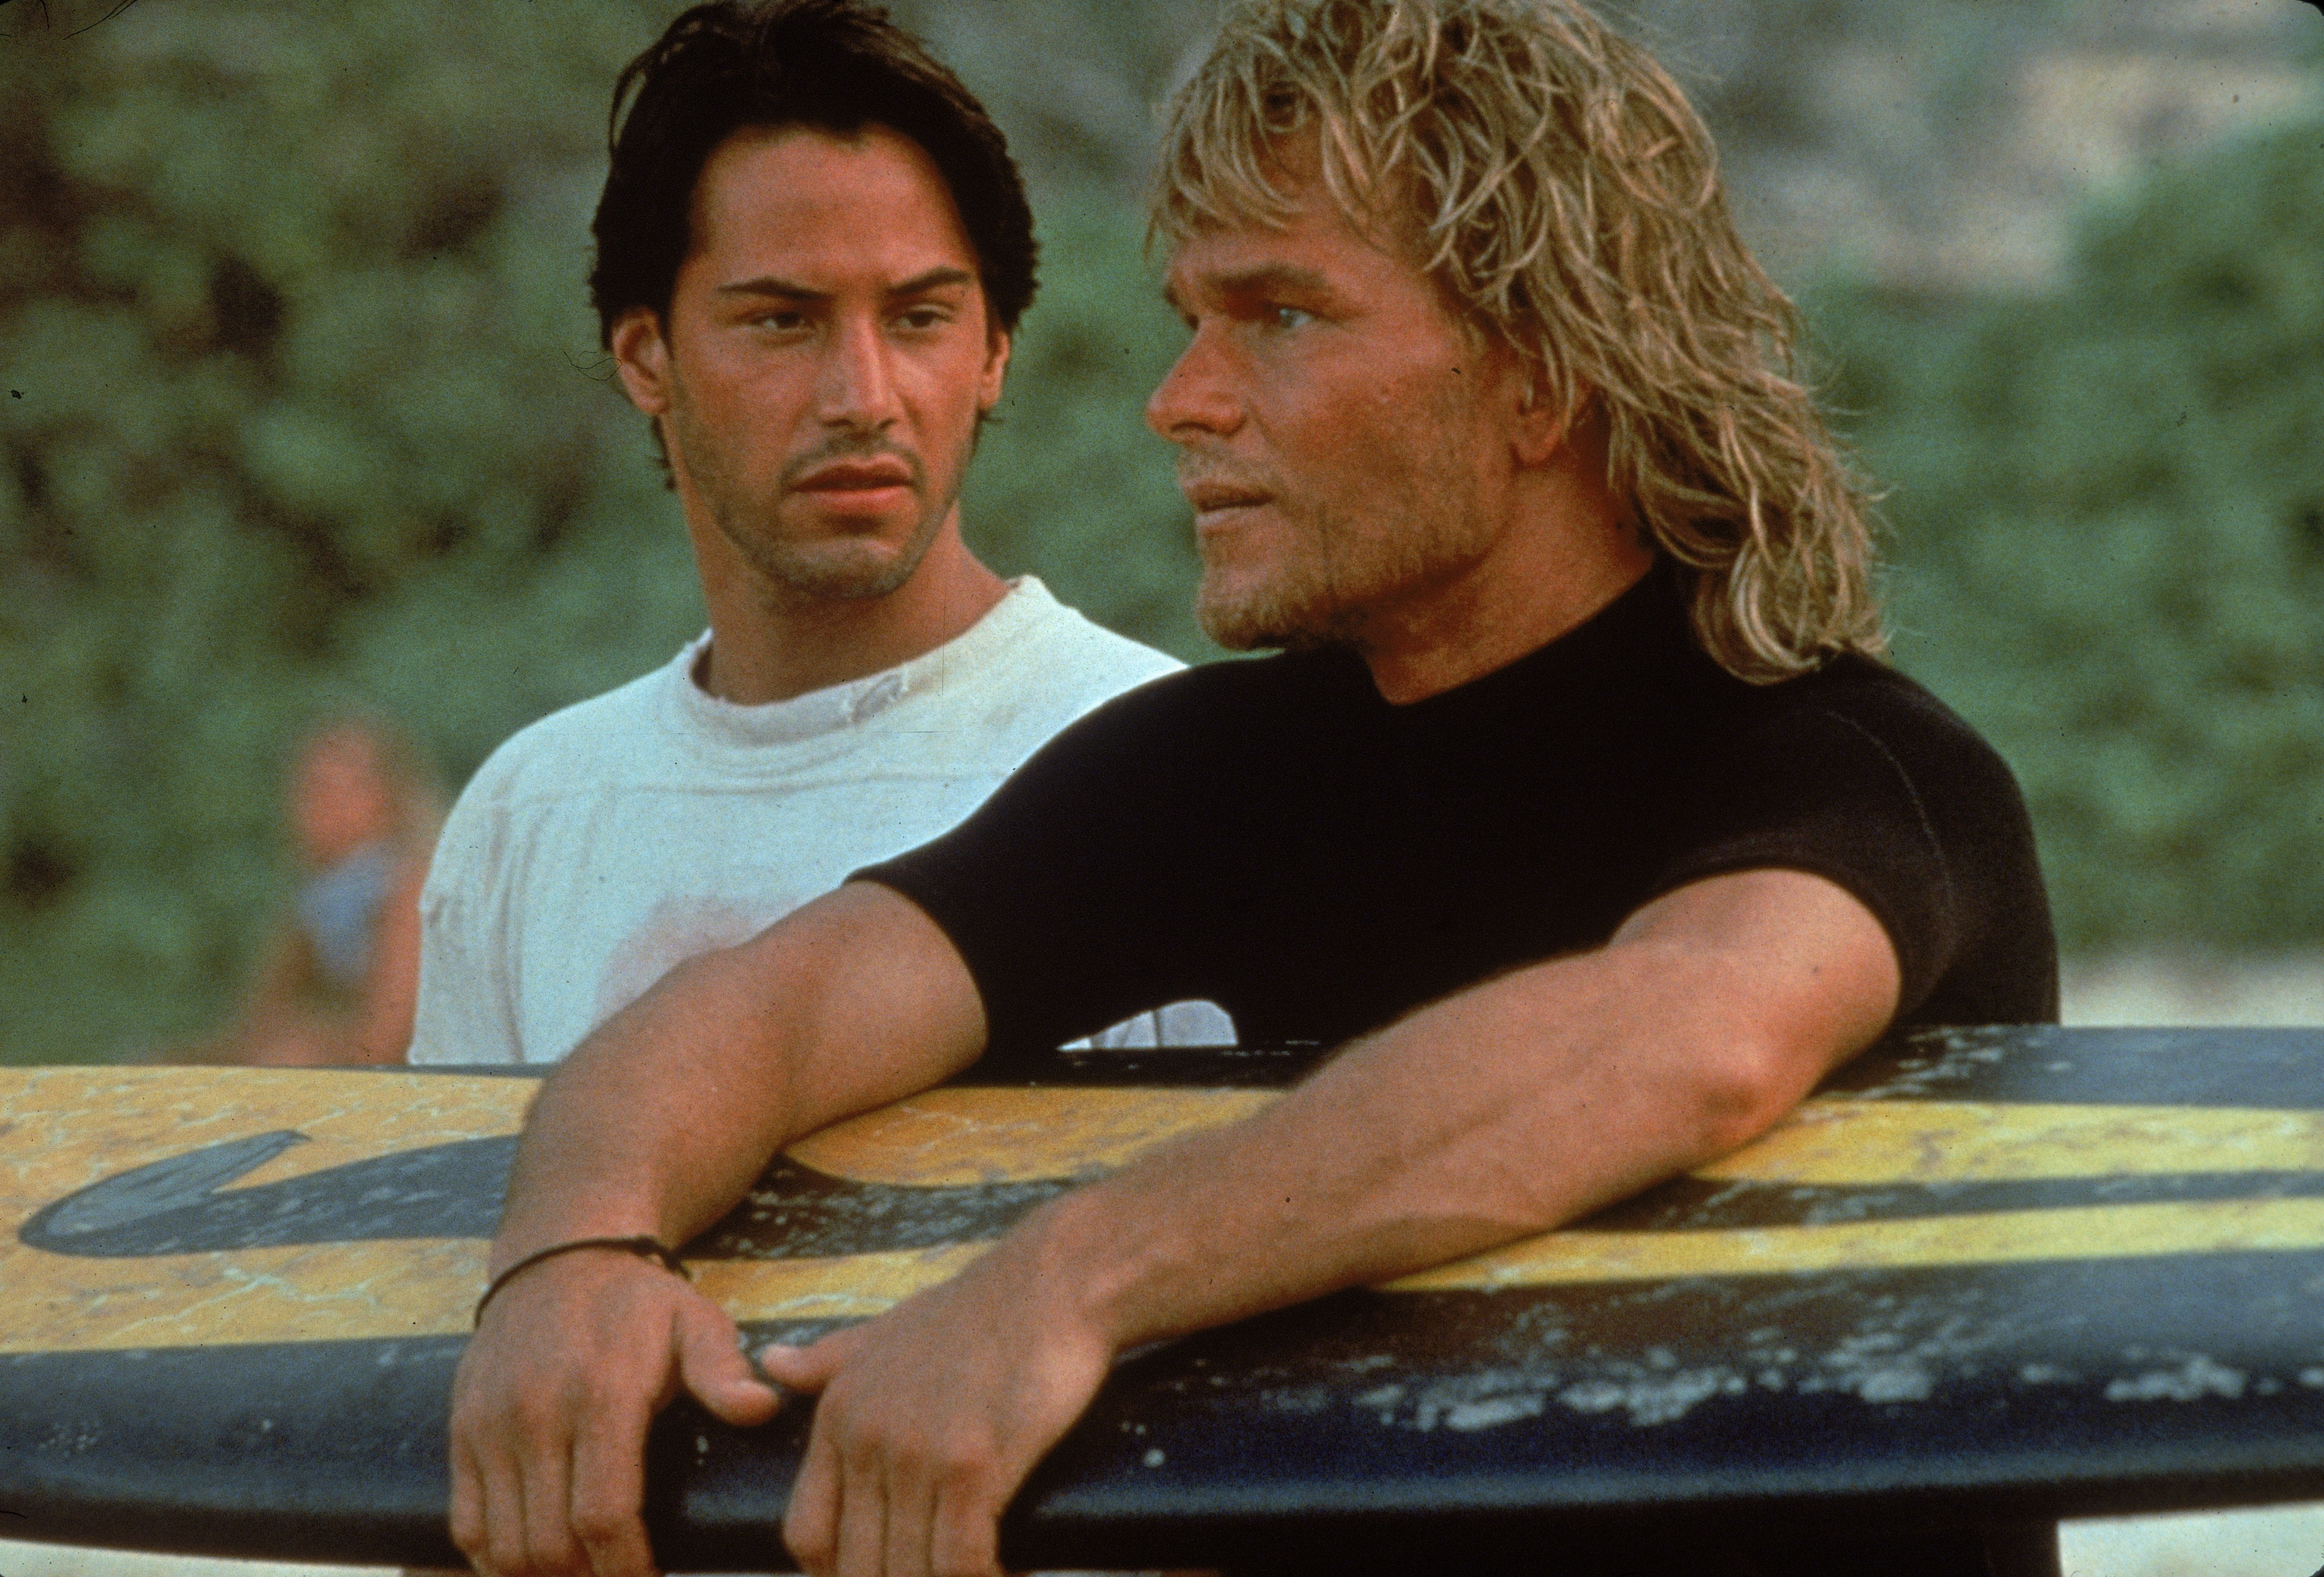 Lebanese-born American actor Keanu Reeves and American actor Patrick Swayze stand on a beach as Swayze holds a surfboard during the filming of the action movie Point Break directed by Kathryn Bigelow, 1991.